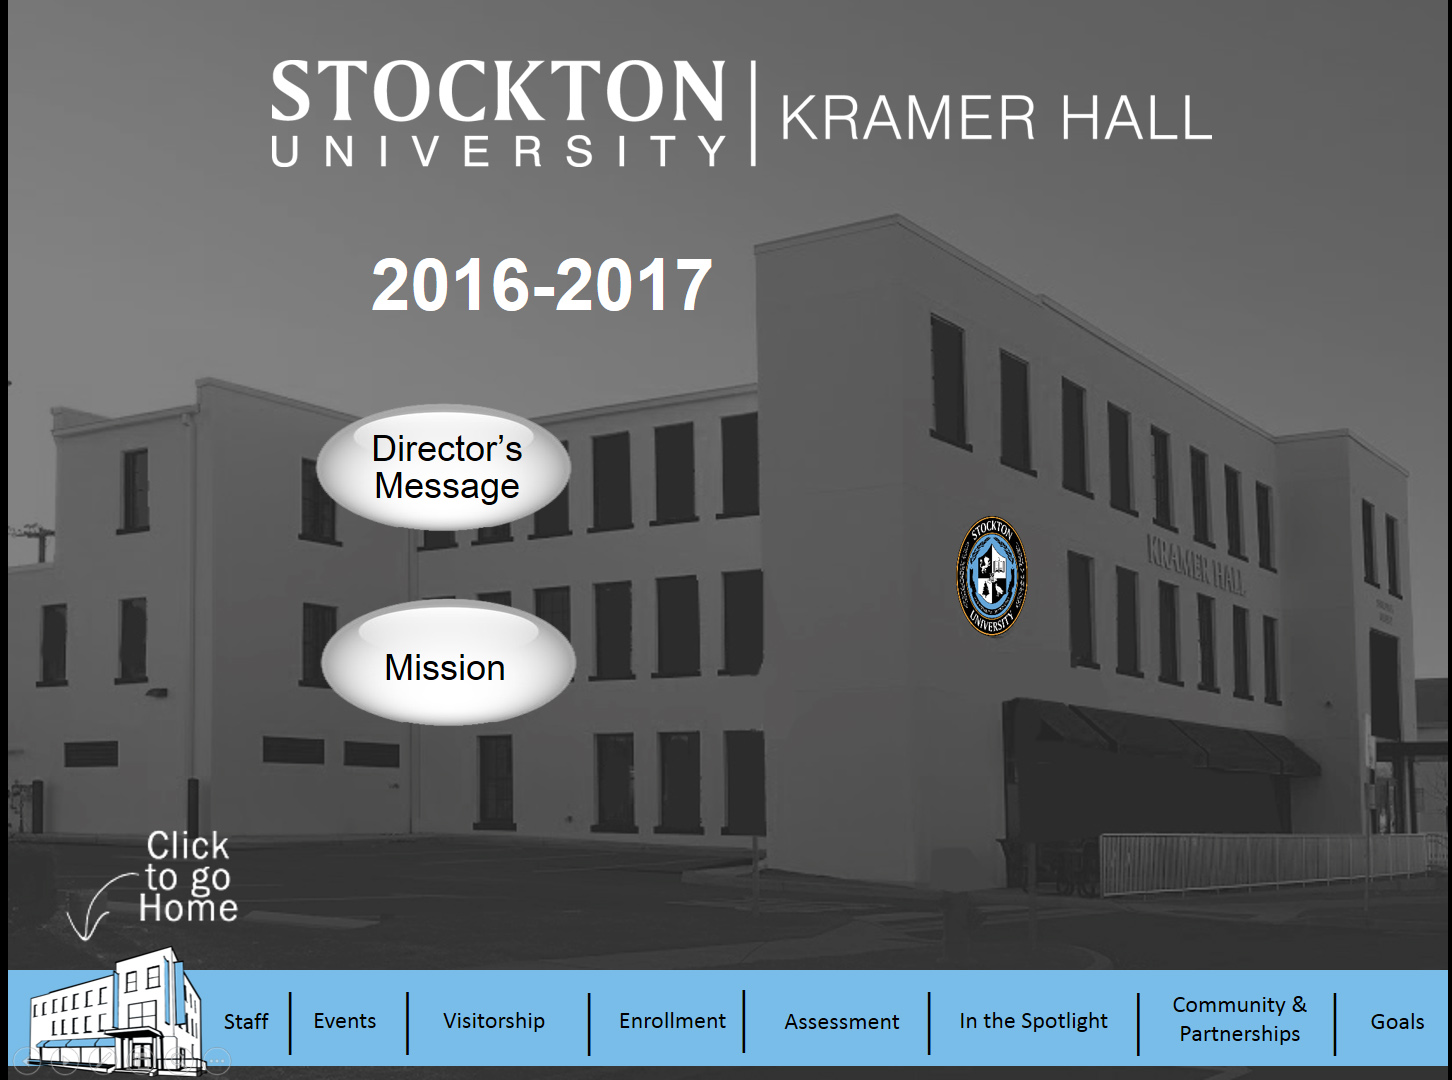 Image link to Kramer Hall Annual Report for 2016